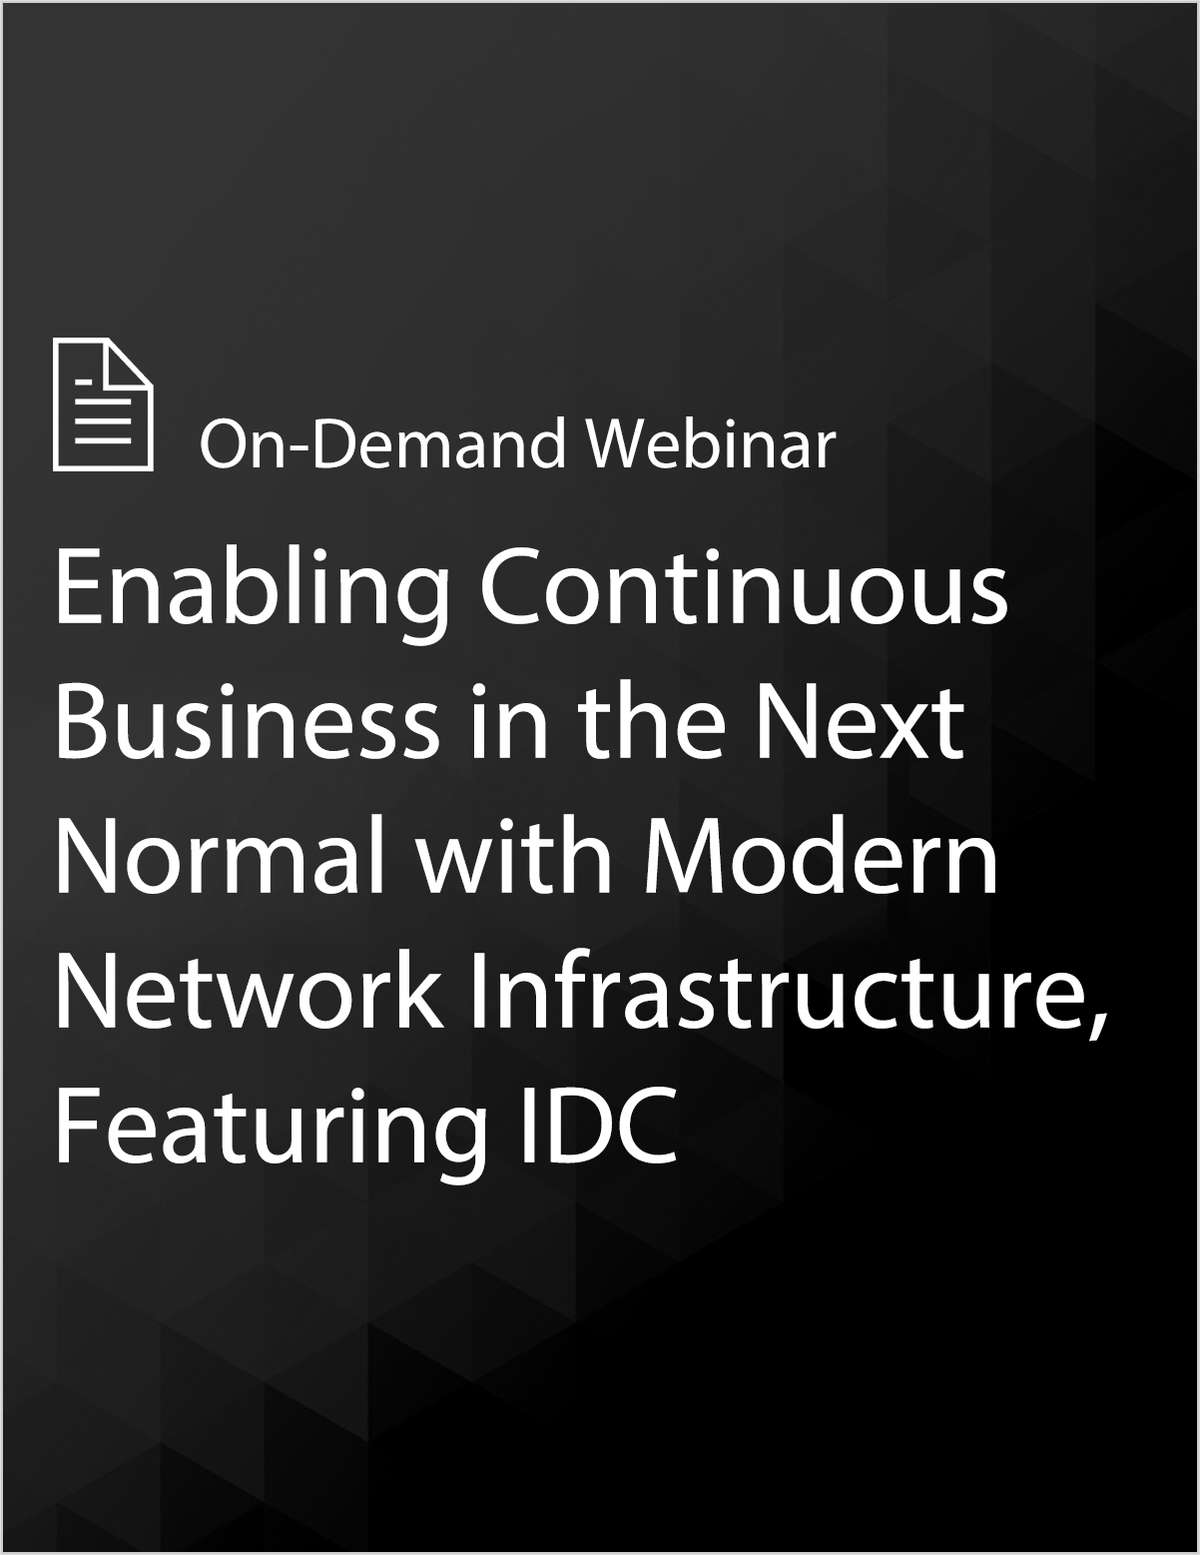 Enabling Continuous Business in the Next Normal with Modern Network Infrastructure, Featuring IDC